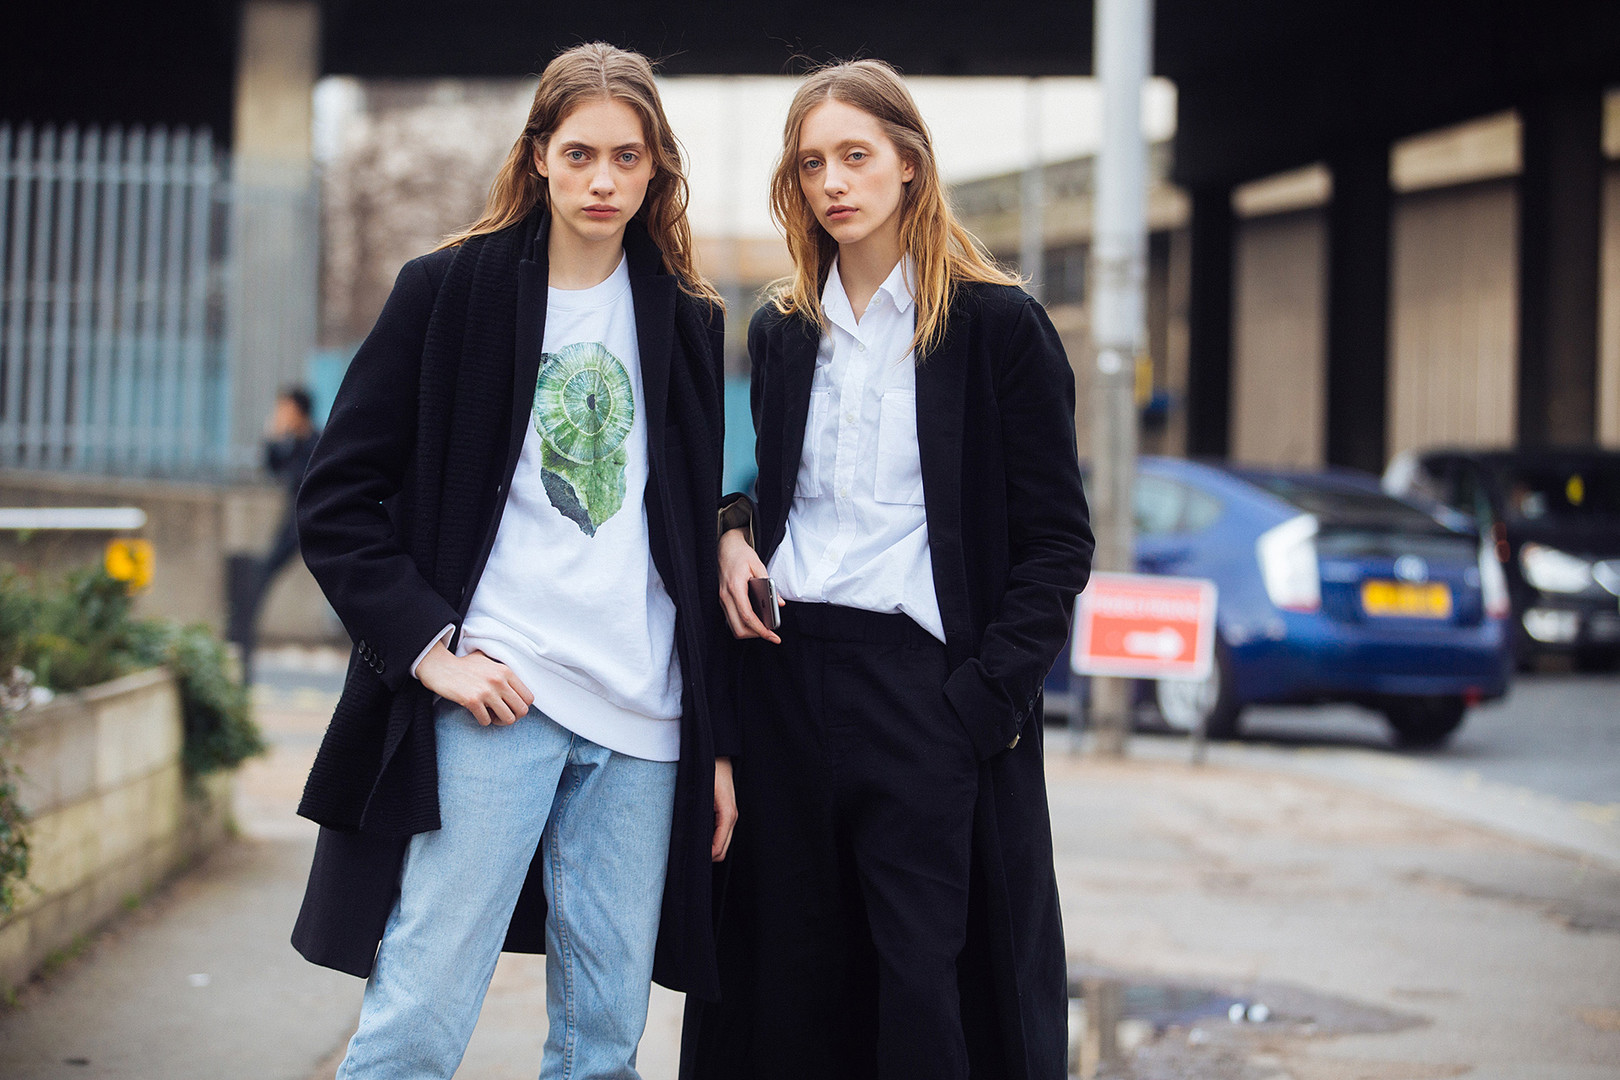 Twin models Lia Pavlova, Odette Pavlova on day 3 of the London Fashion Week February 2017 collections on February 19, 2017 in London, UK